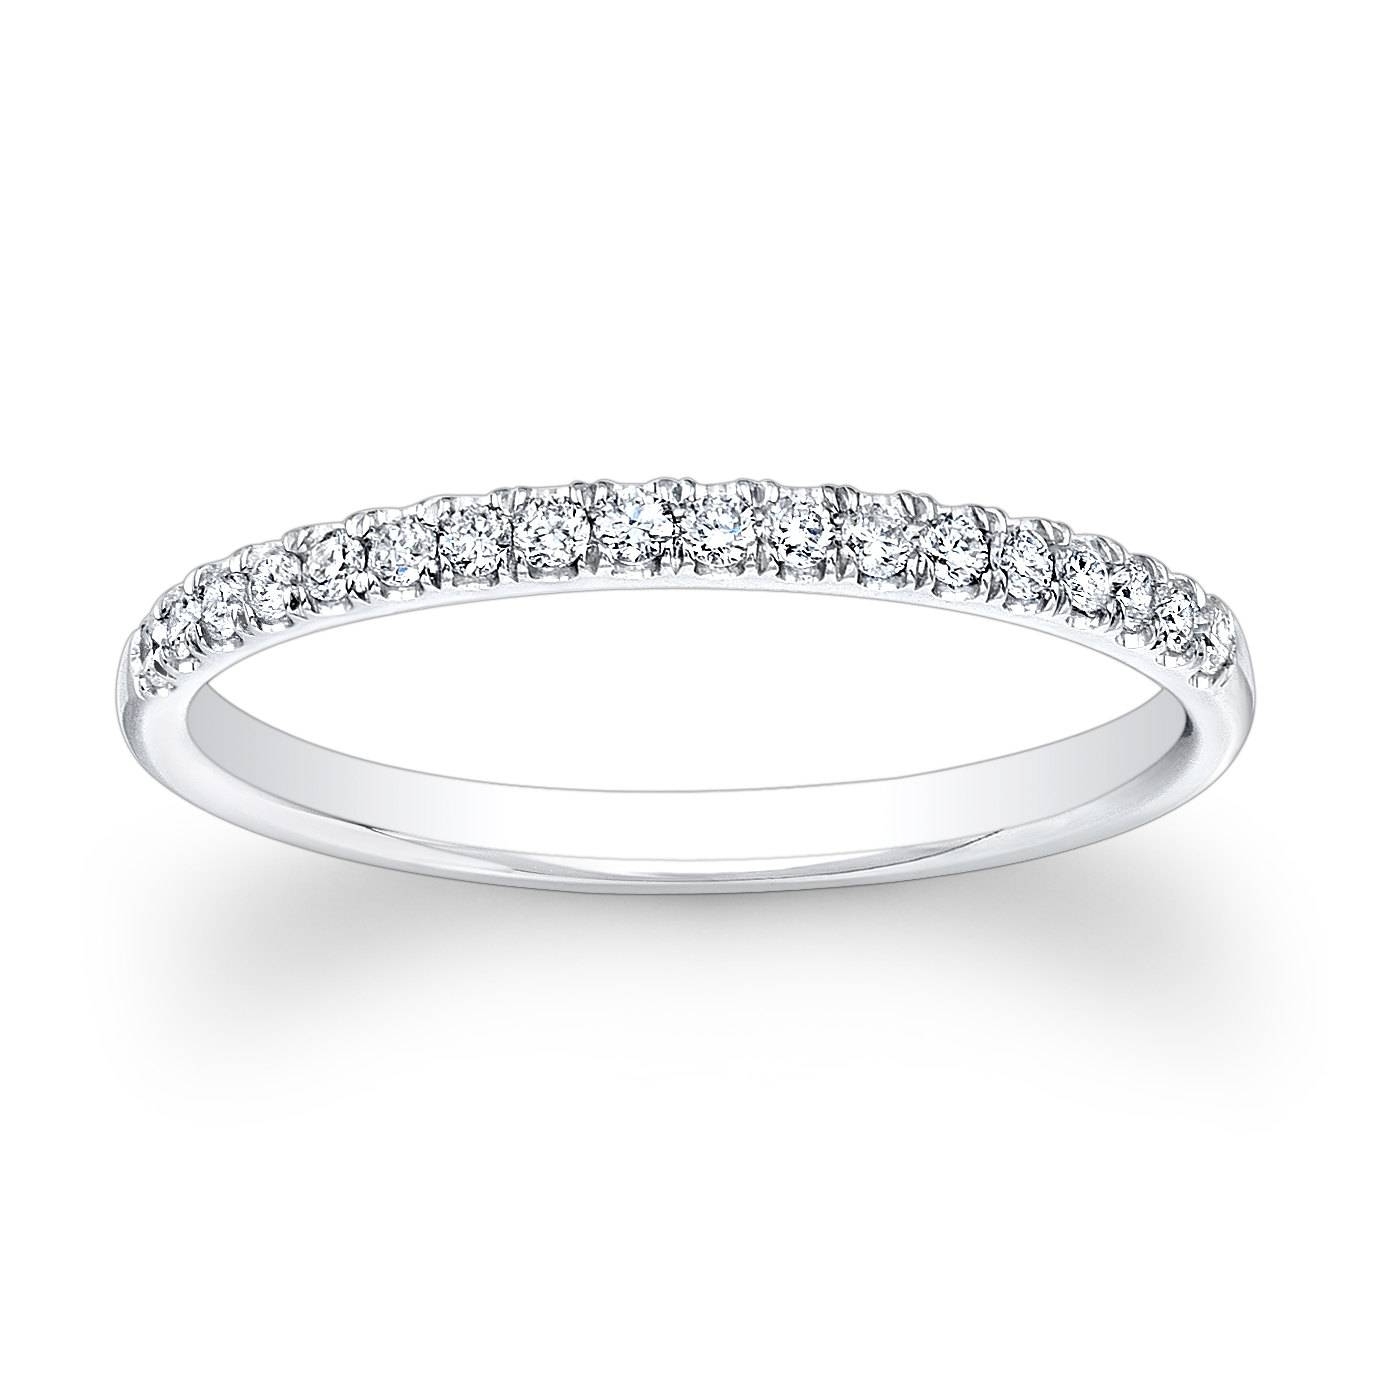 Ladies Platinum And Diamond Wedding Band 0.20 Ctw G Vs2 Intended For Most Recently Released Platinum Wedding Band With Diamonds (Gallery 2 of 15)